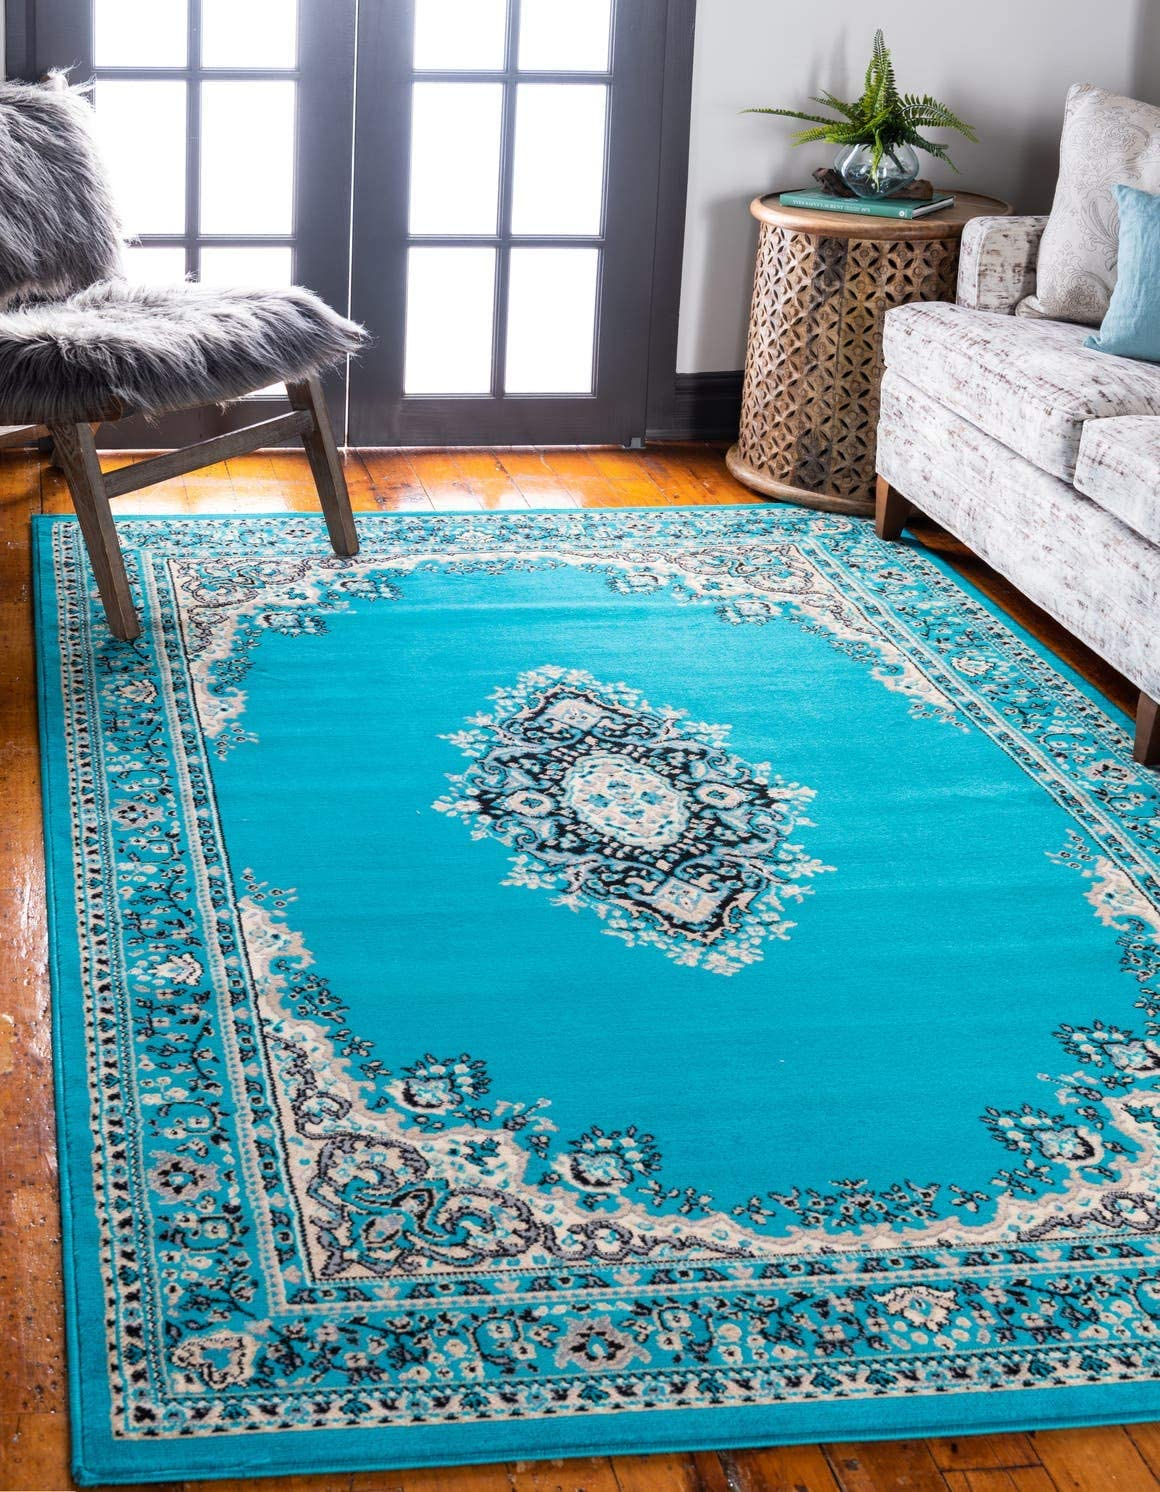 Unique Loom Reza Collection Classic Traditional Turquoise Area Rug 9 0 x 12 0